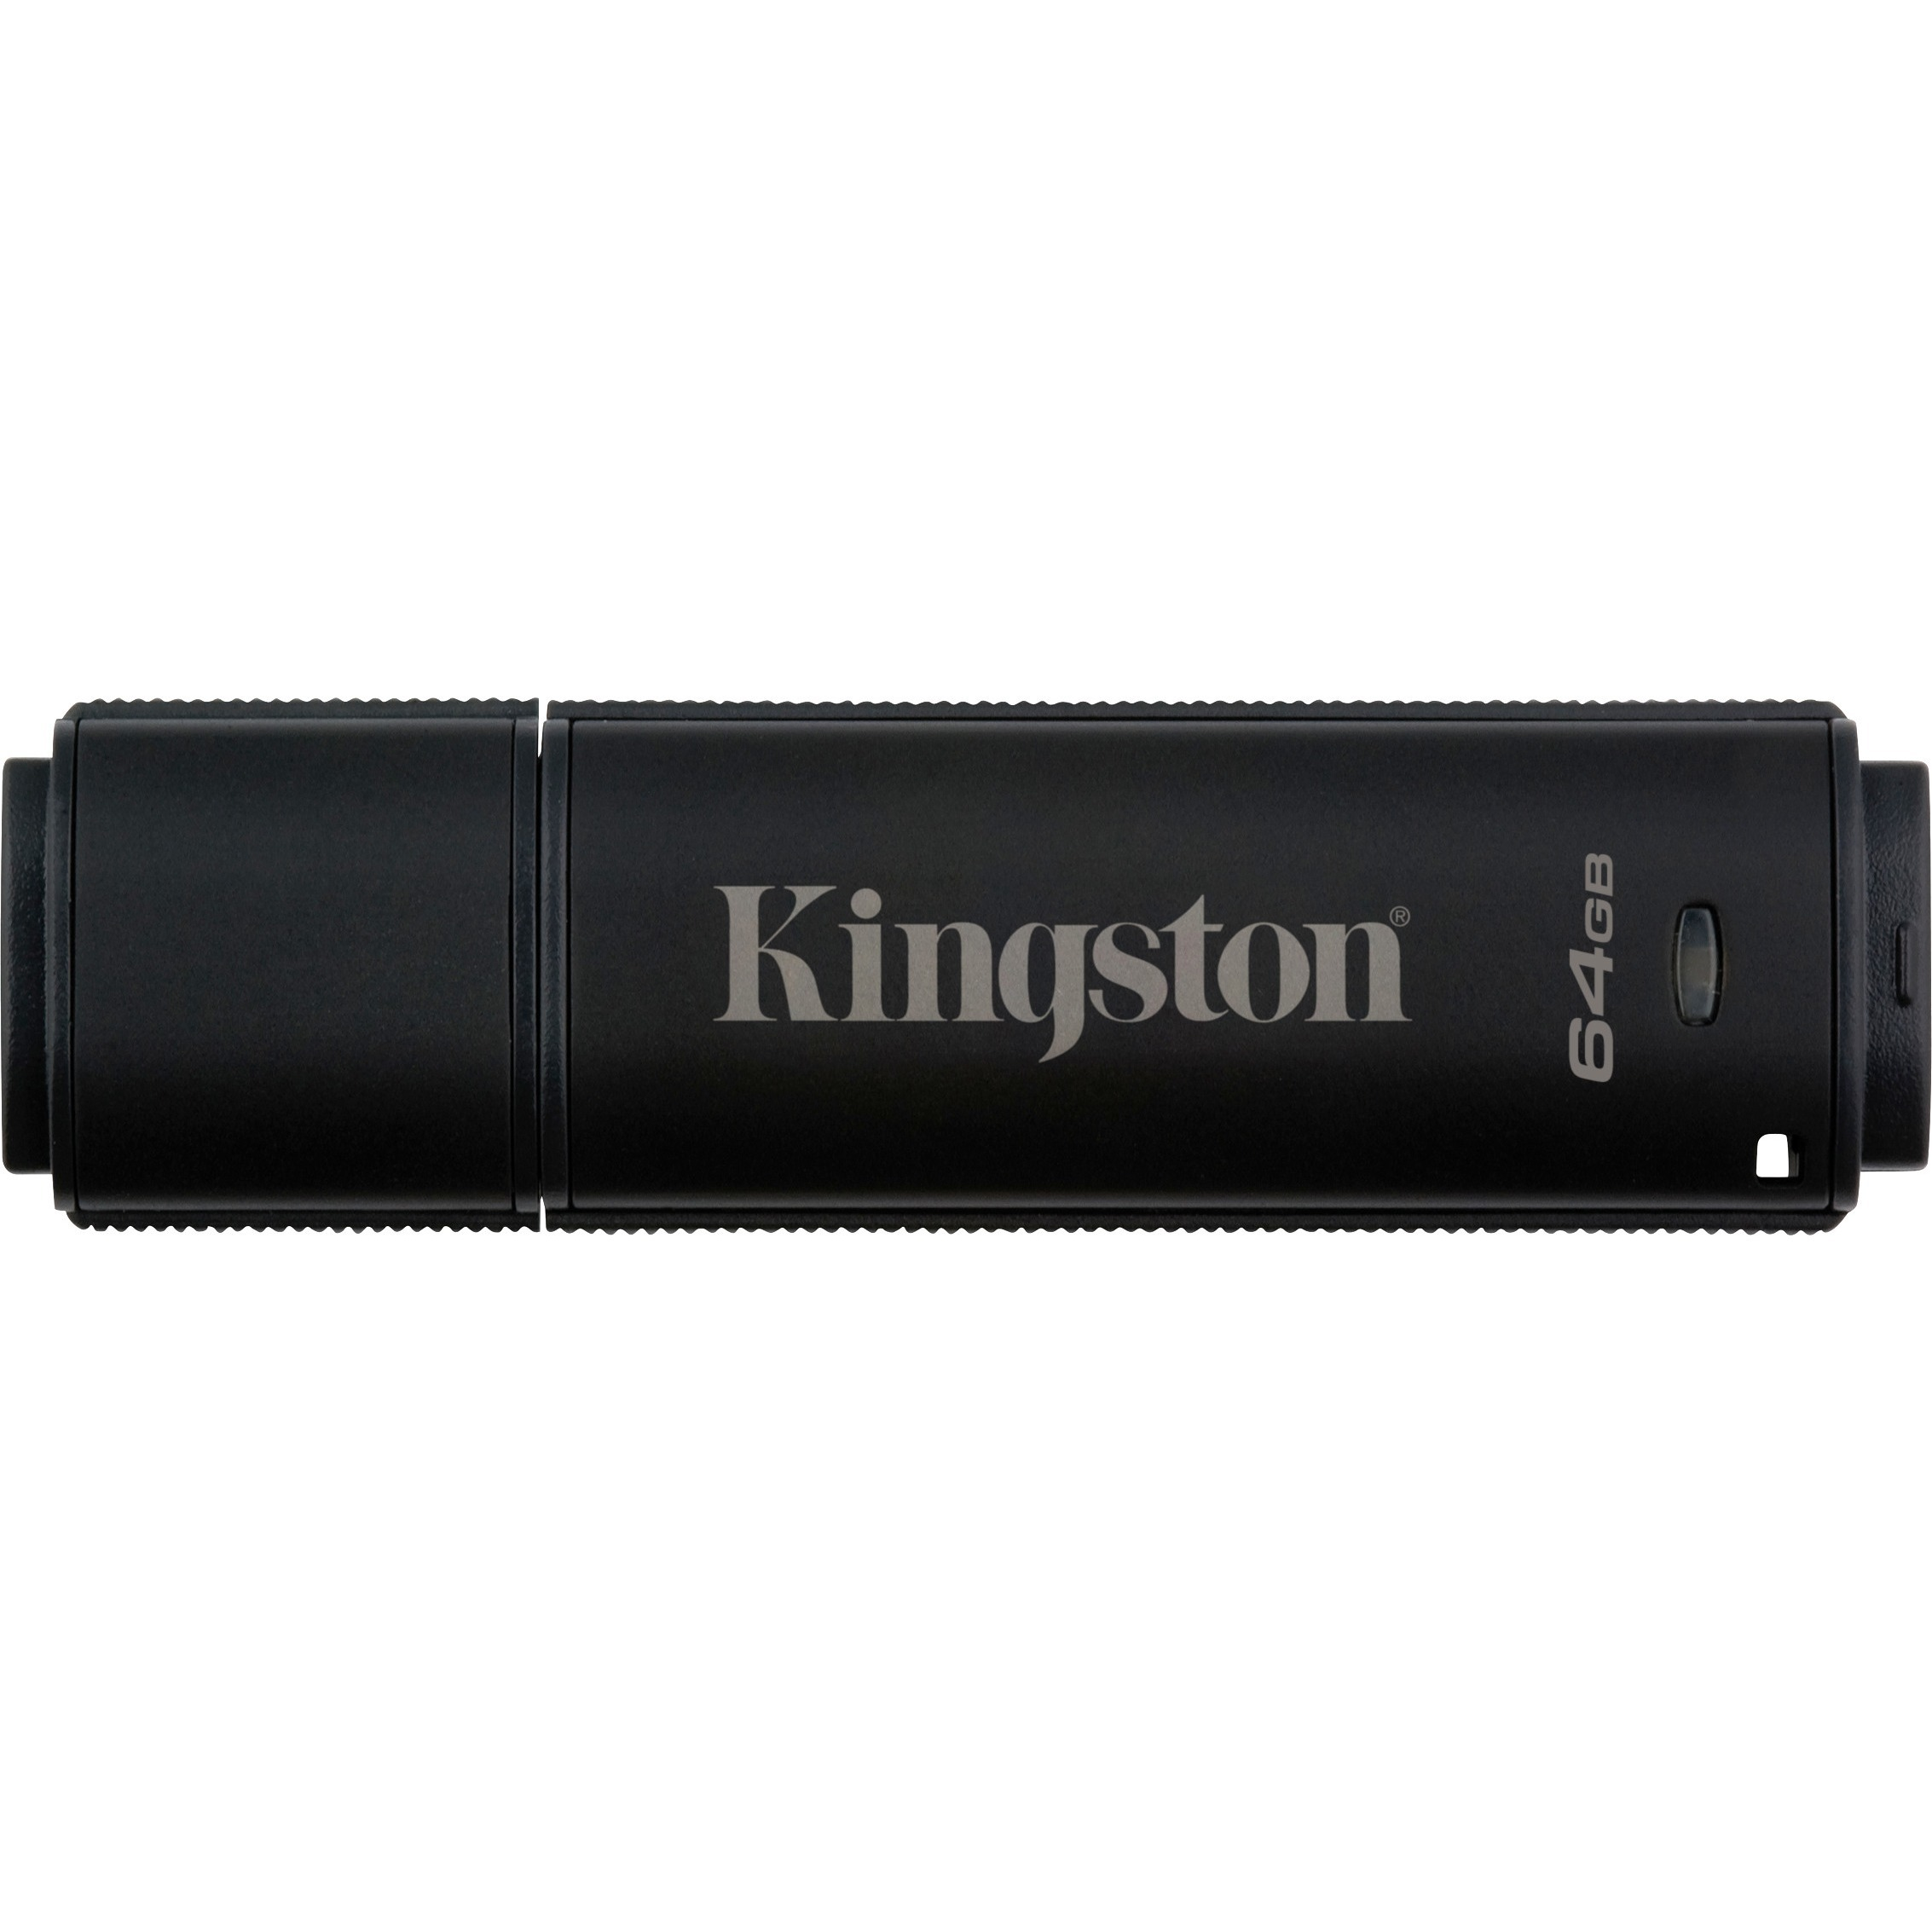 Kingston DataTraveler 4000 G2 64 GB USB 3.0 Flash Drive - 256-bit AES